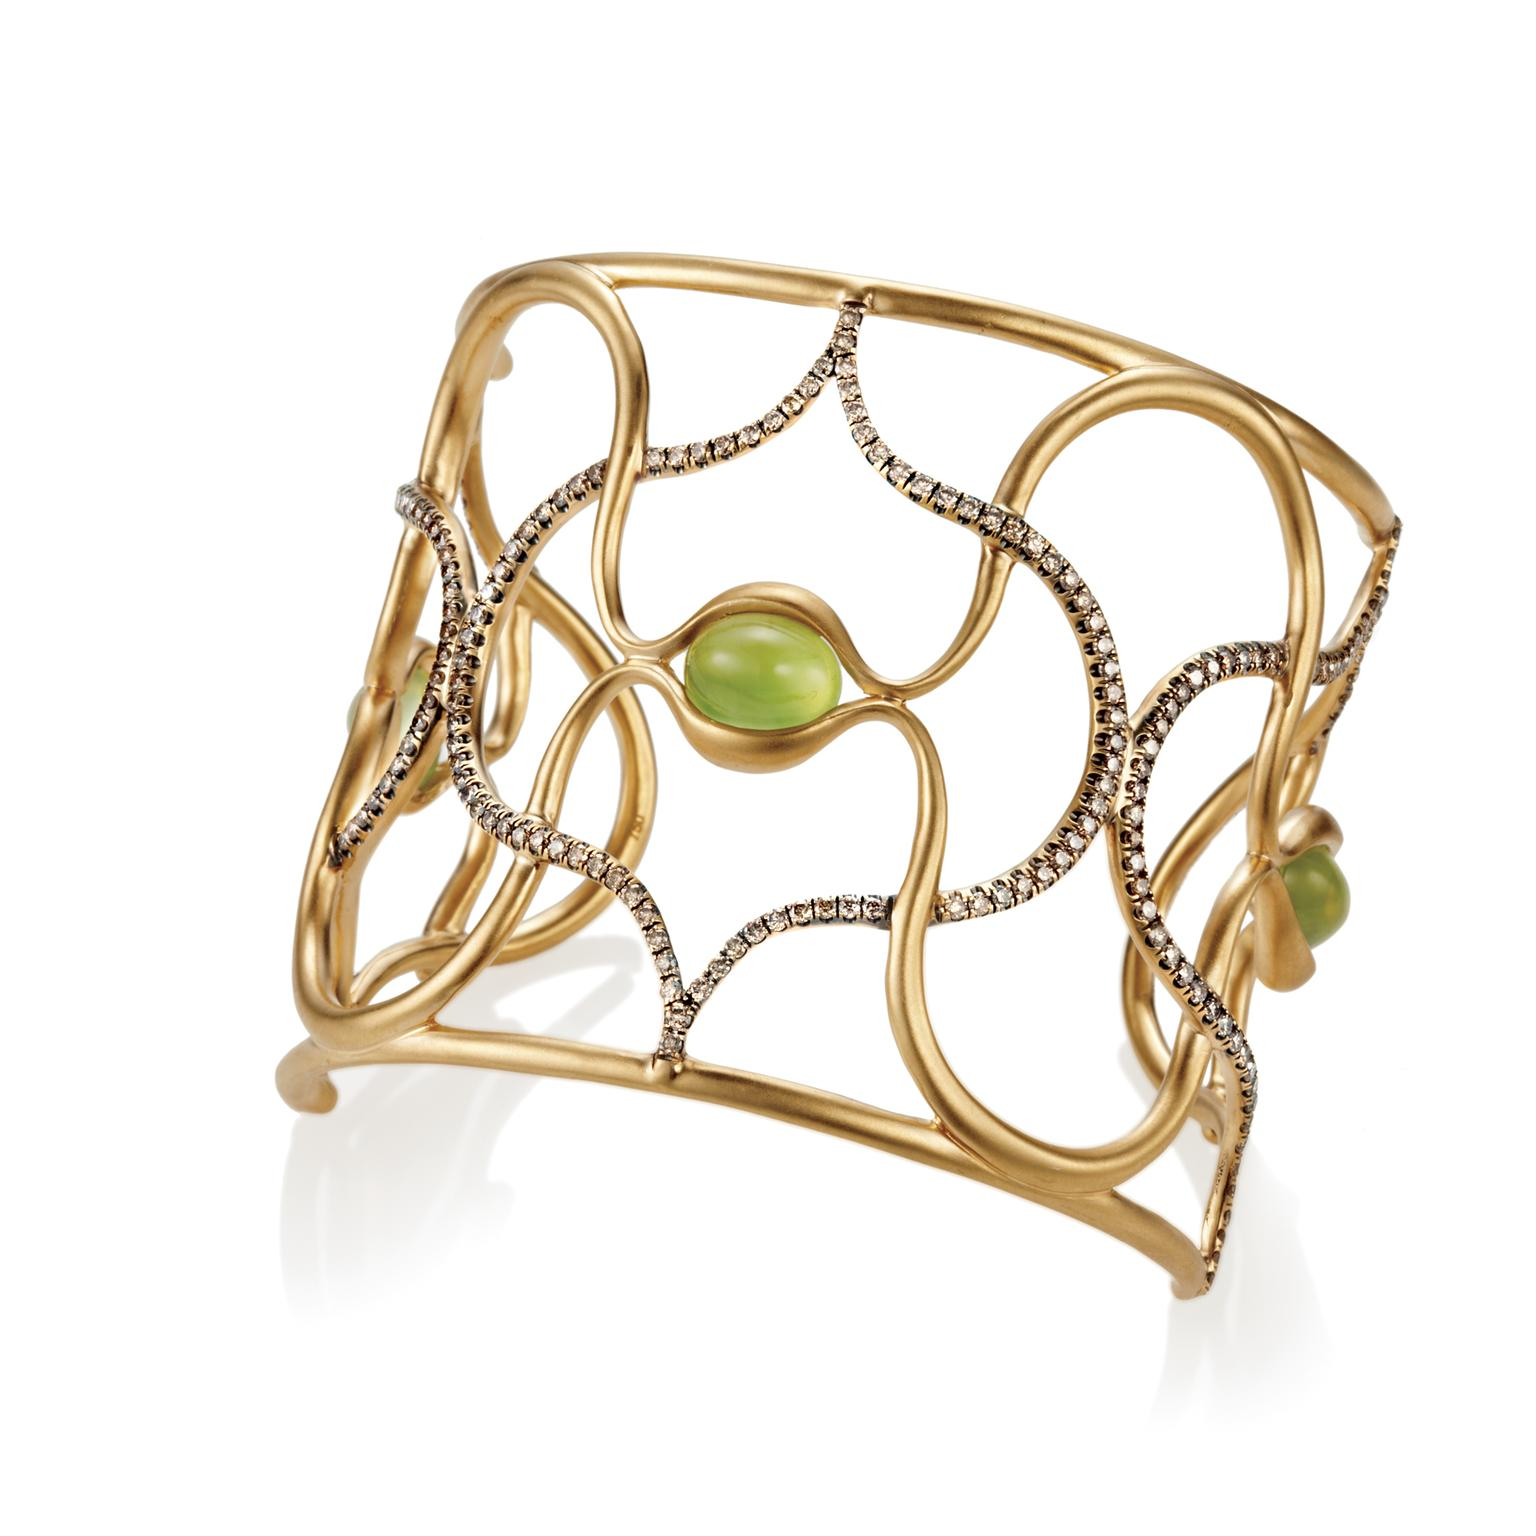 Anahita prehnite and diamond cuff bracelet